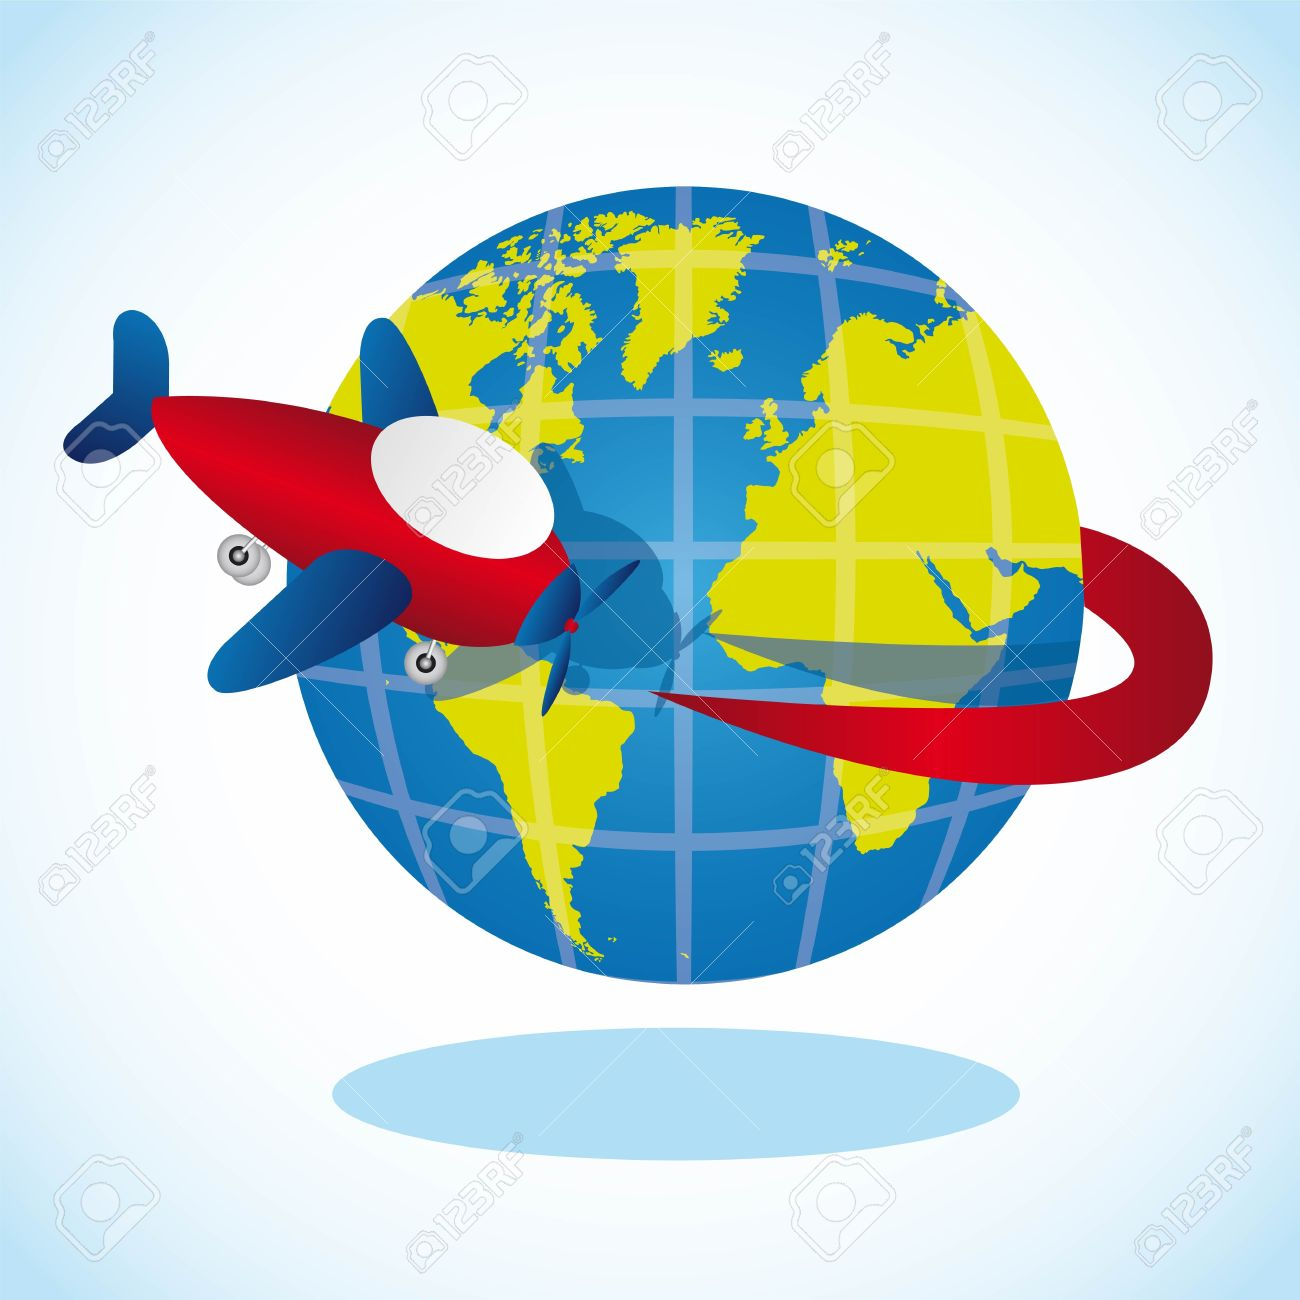 plane going around the planet, vector illustration Stock Vector - 13563545